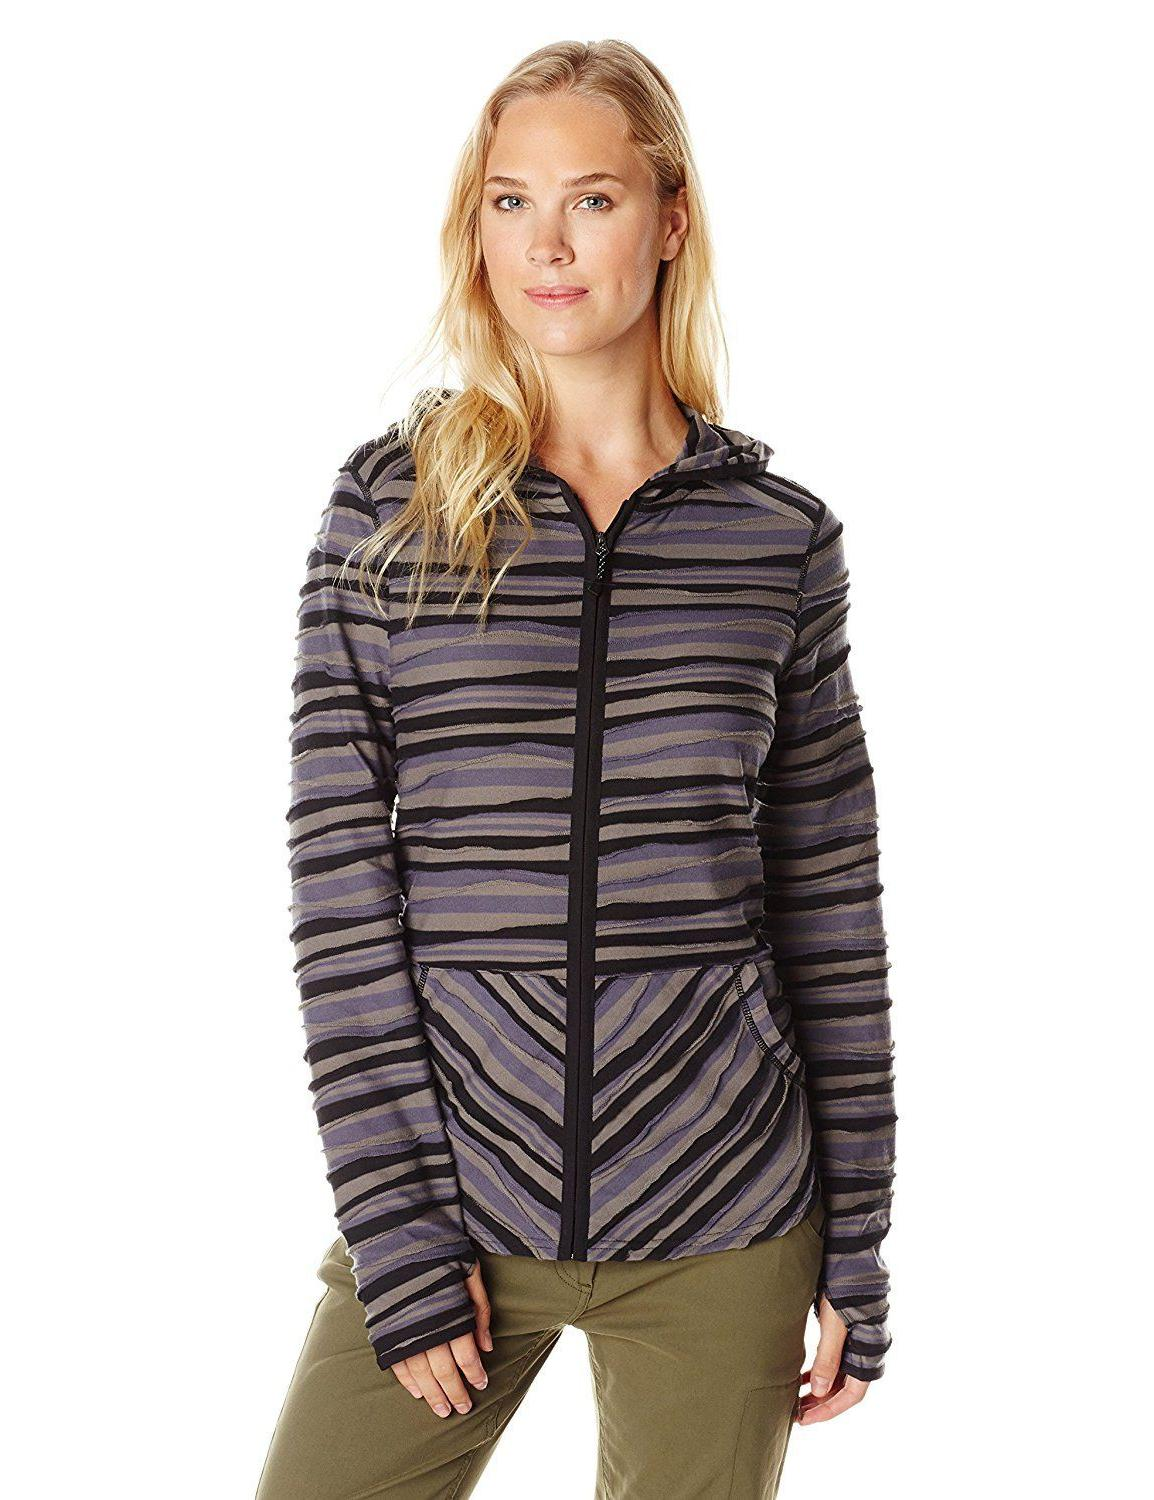 ExOfficio - Women's L - NWT$75 - Black/Gray Striped UPF Tech